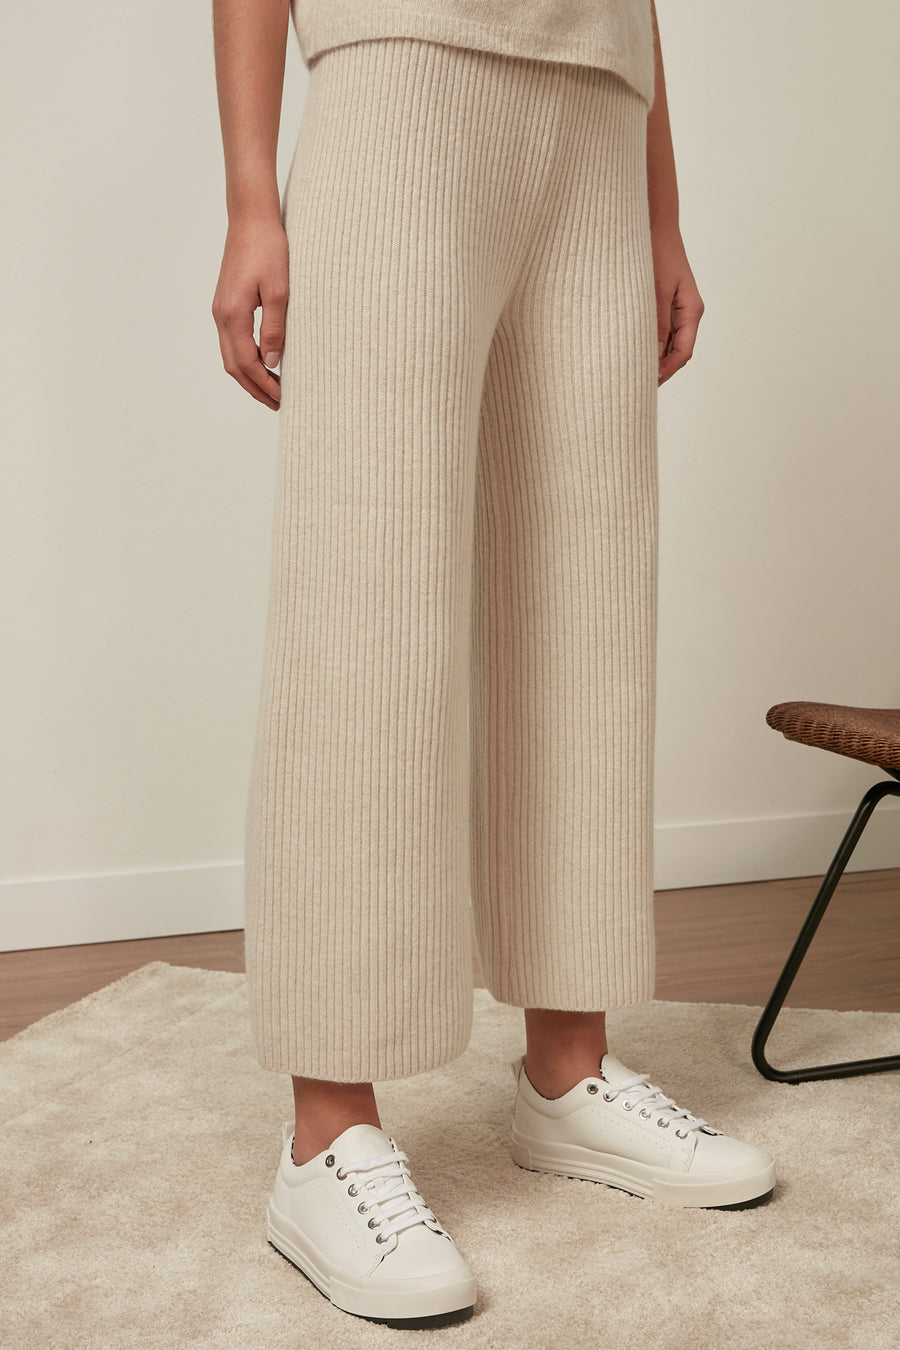 Ribbed wool trousers - Zelle Studio